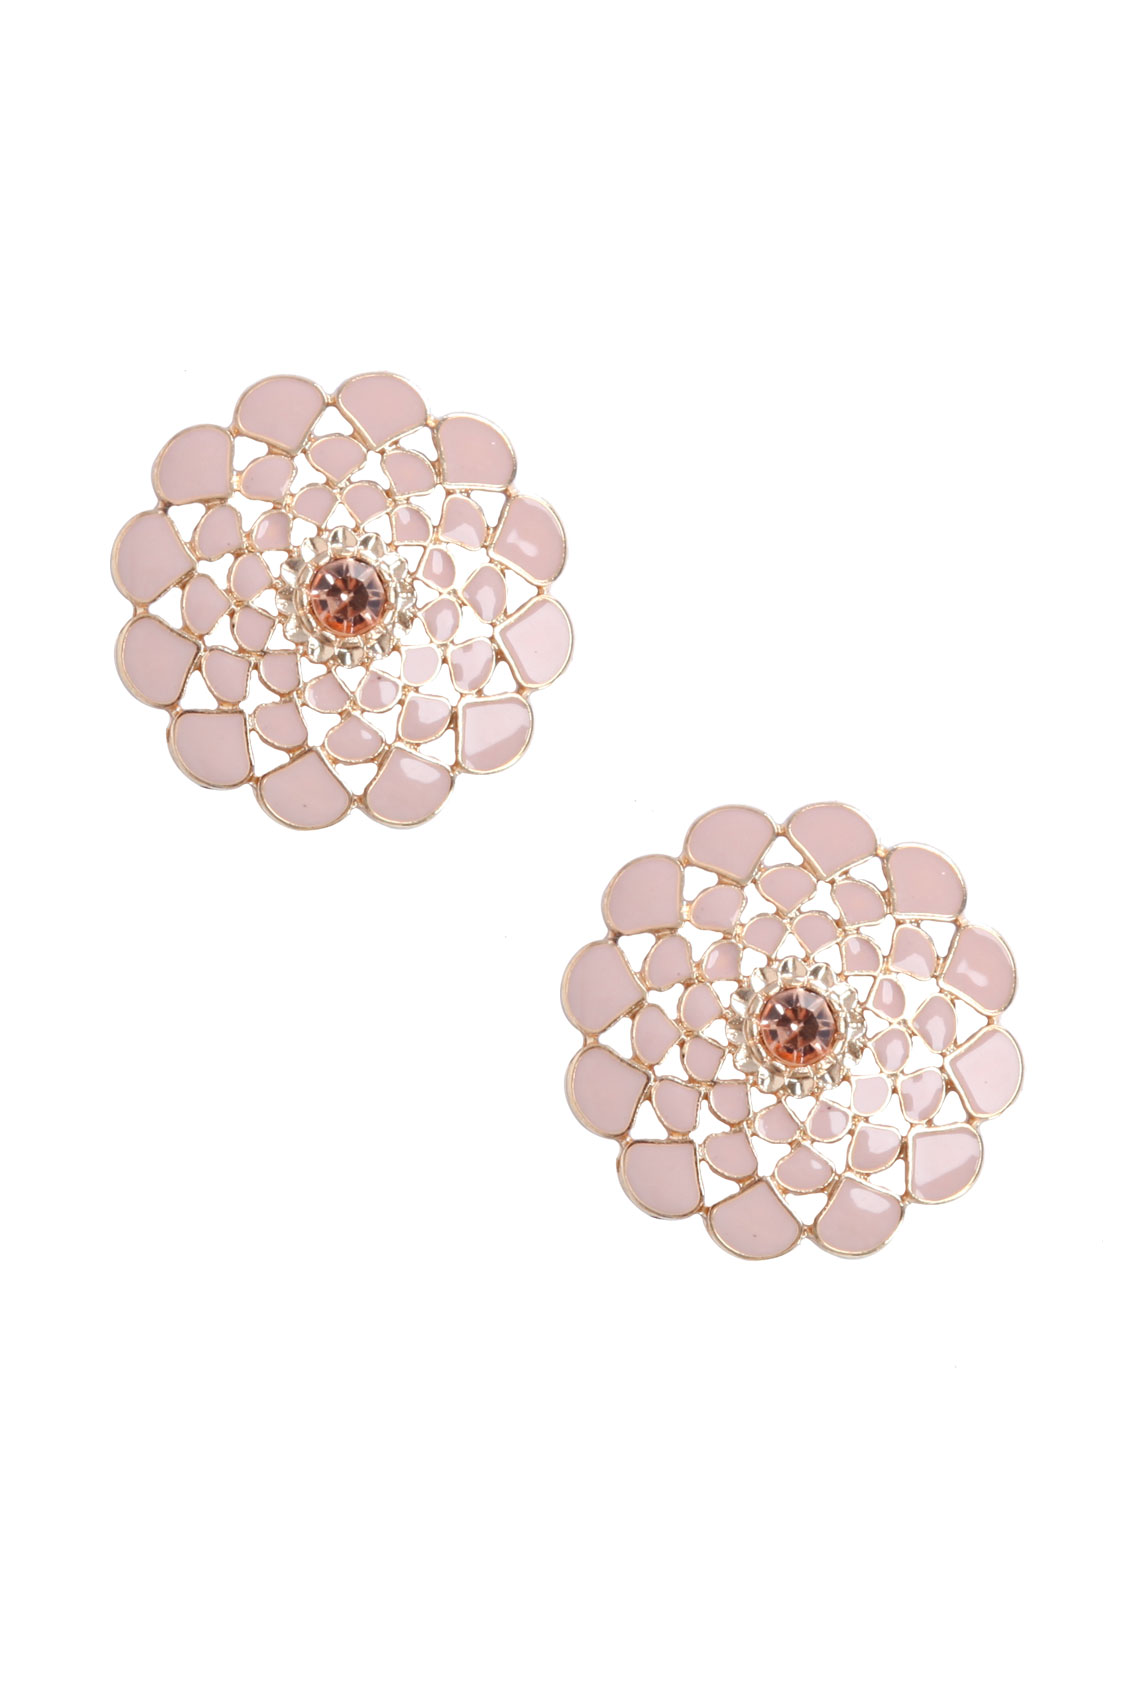 design make shop by trading cute info stud flower see it oriental big scarseze